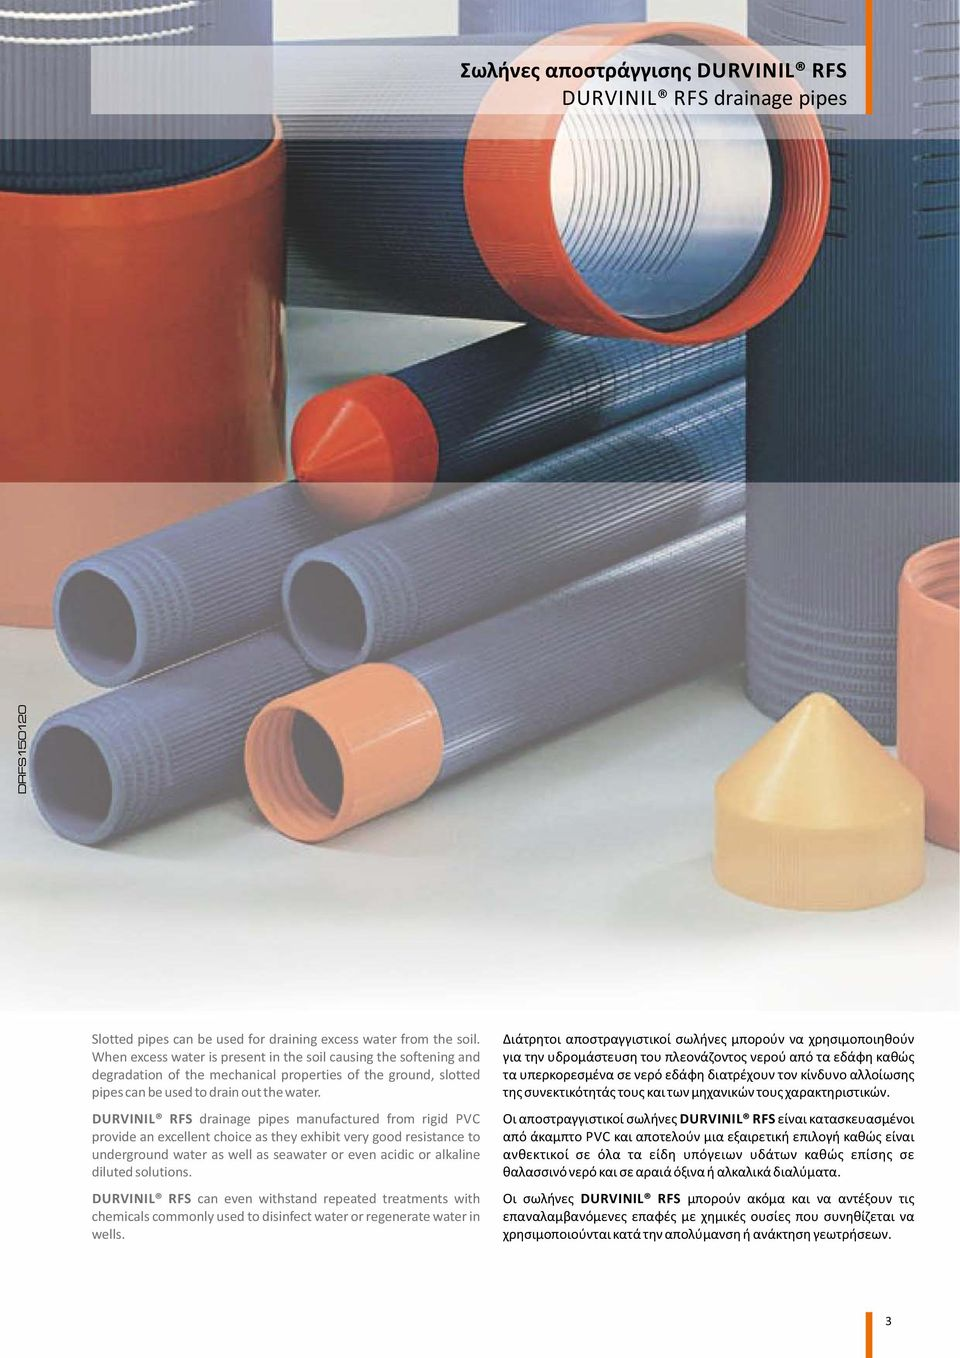 DURVINIL RFS drainage pipes manufactured from rigid PVC provide an excellent choice as they exhibit very good resistance to underground water as well as seawater or even acidic or alkaline diluted